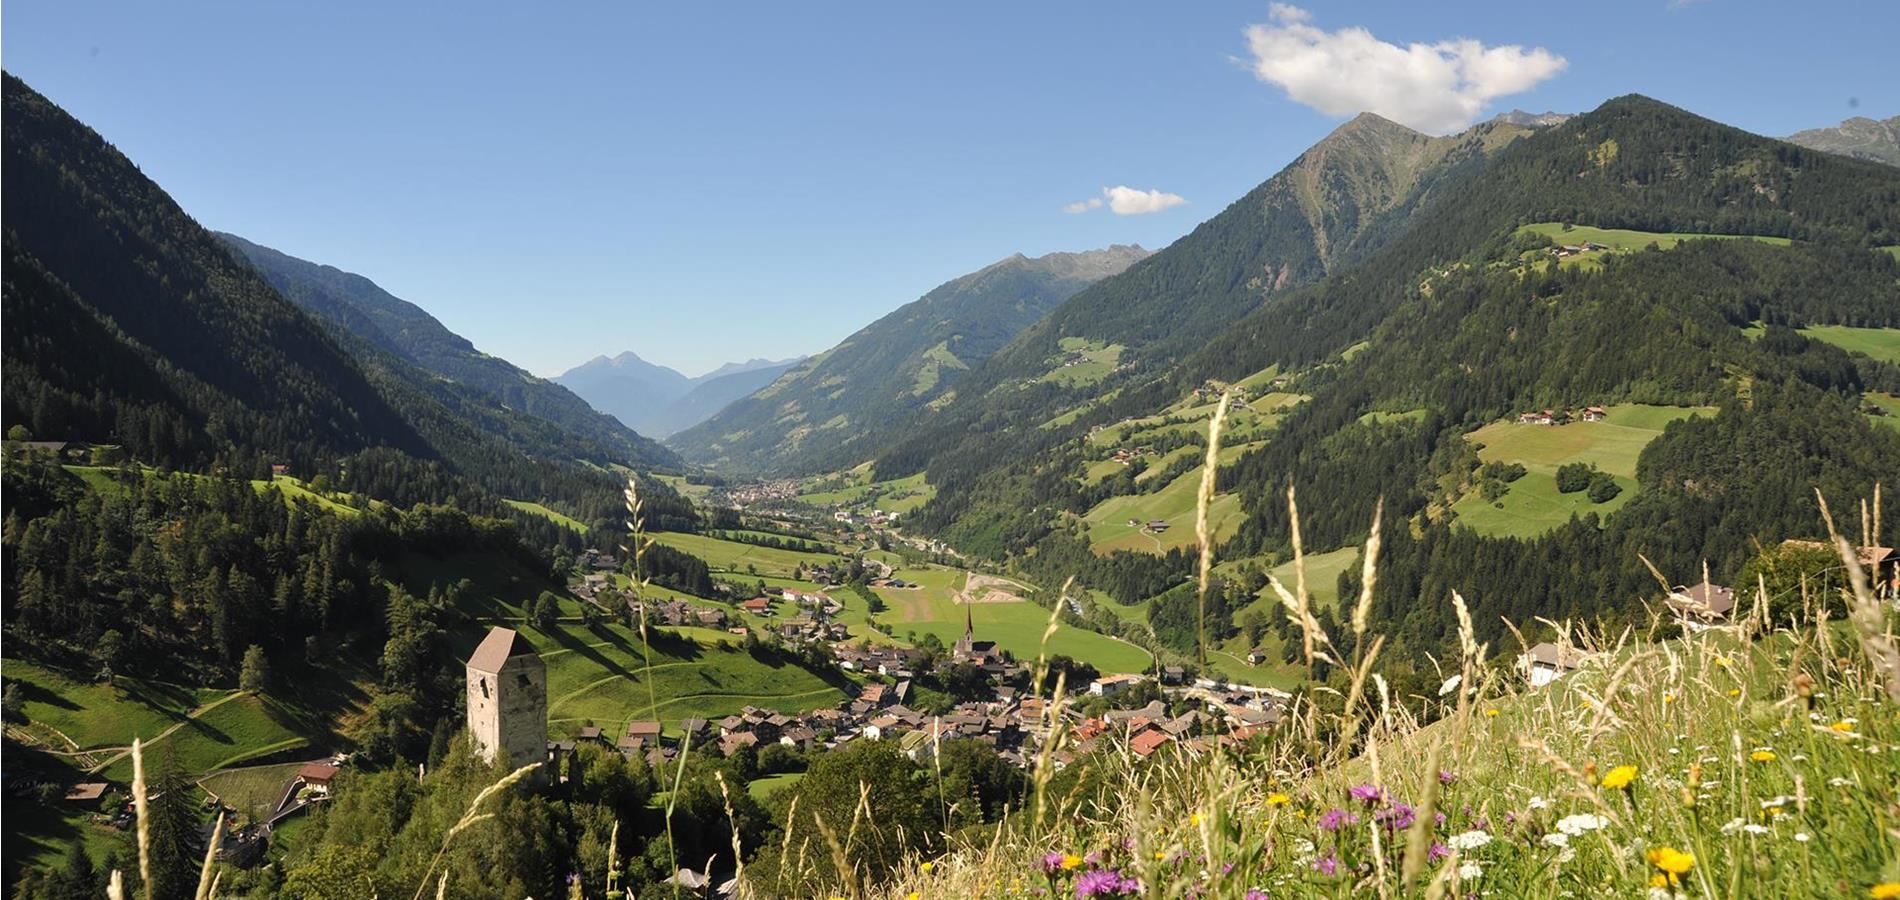 The Passeiertal Valley